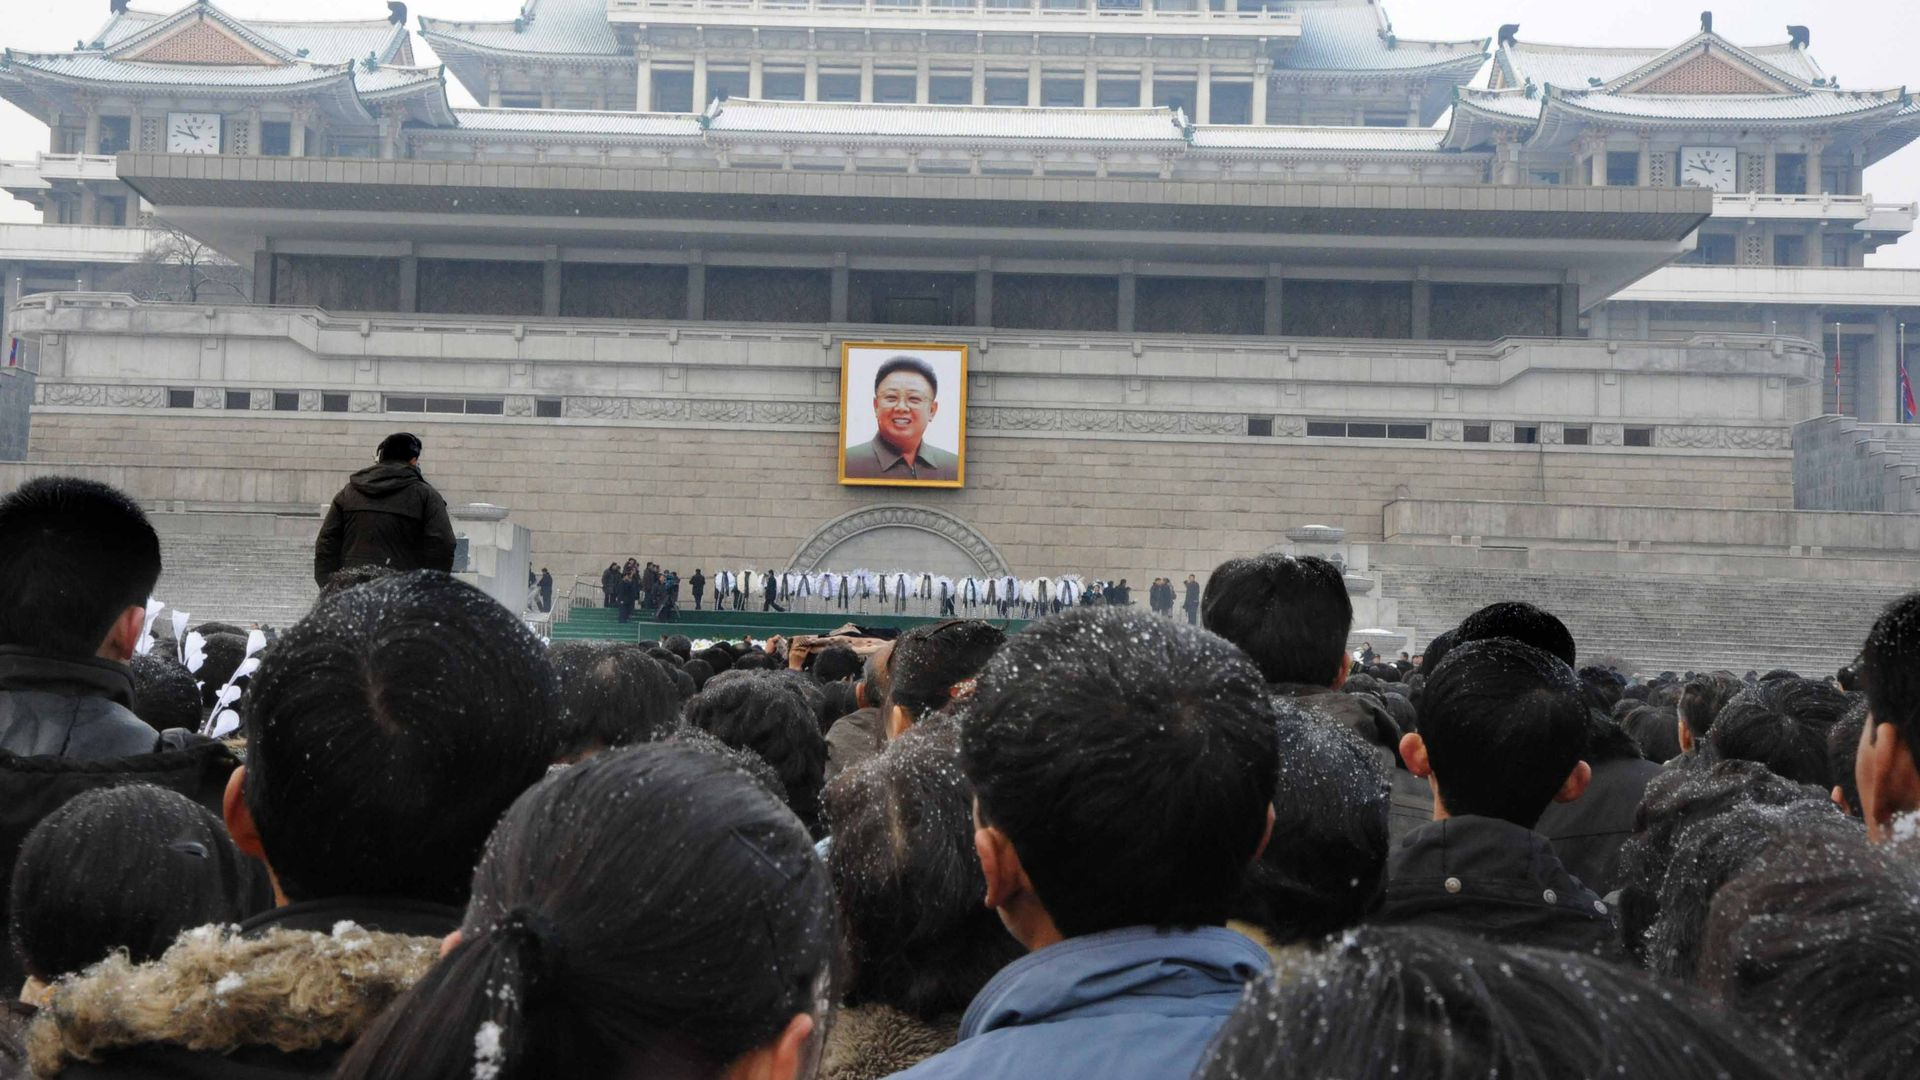 Pyongyang citizens gathering to mourn in front of a portrait of late North Korean leader Kim Jong-il at the Pyongyang Gymnasium.